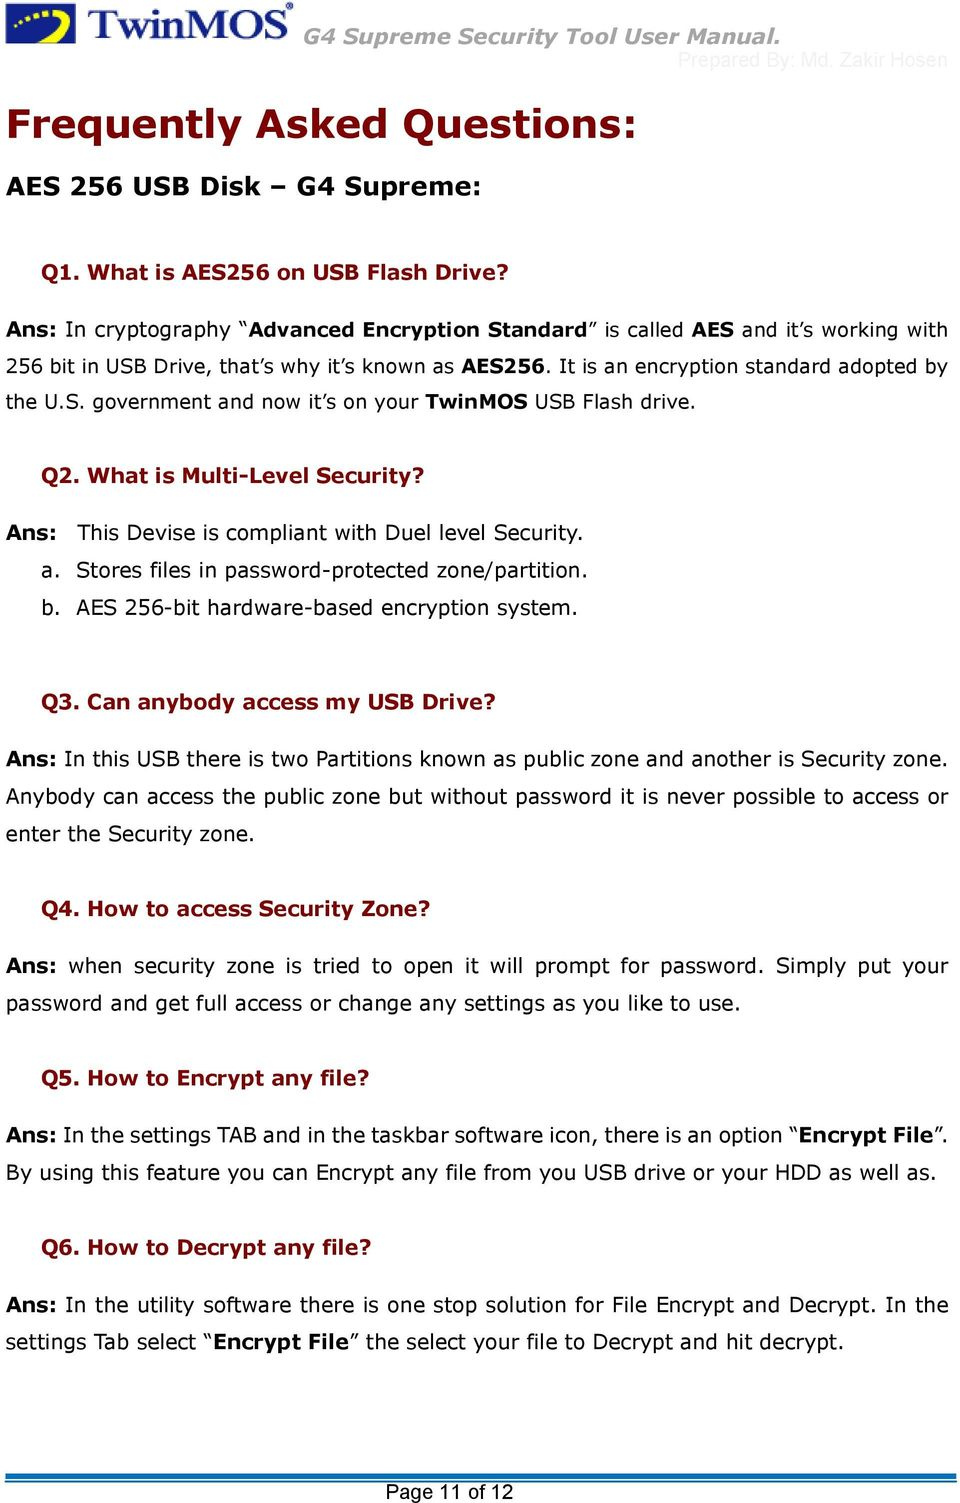 Q2. What is Multi-Level Security? Ans: This Devise is compliant with Duel level Security. a. Stores files in password-protected zone/partition. b. AES 256-bit hardware-based encryption system. Q3.